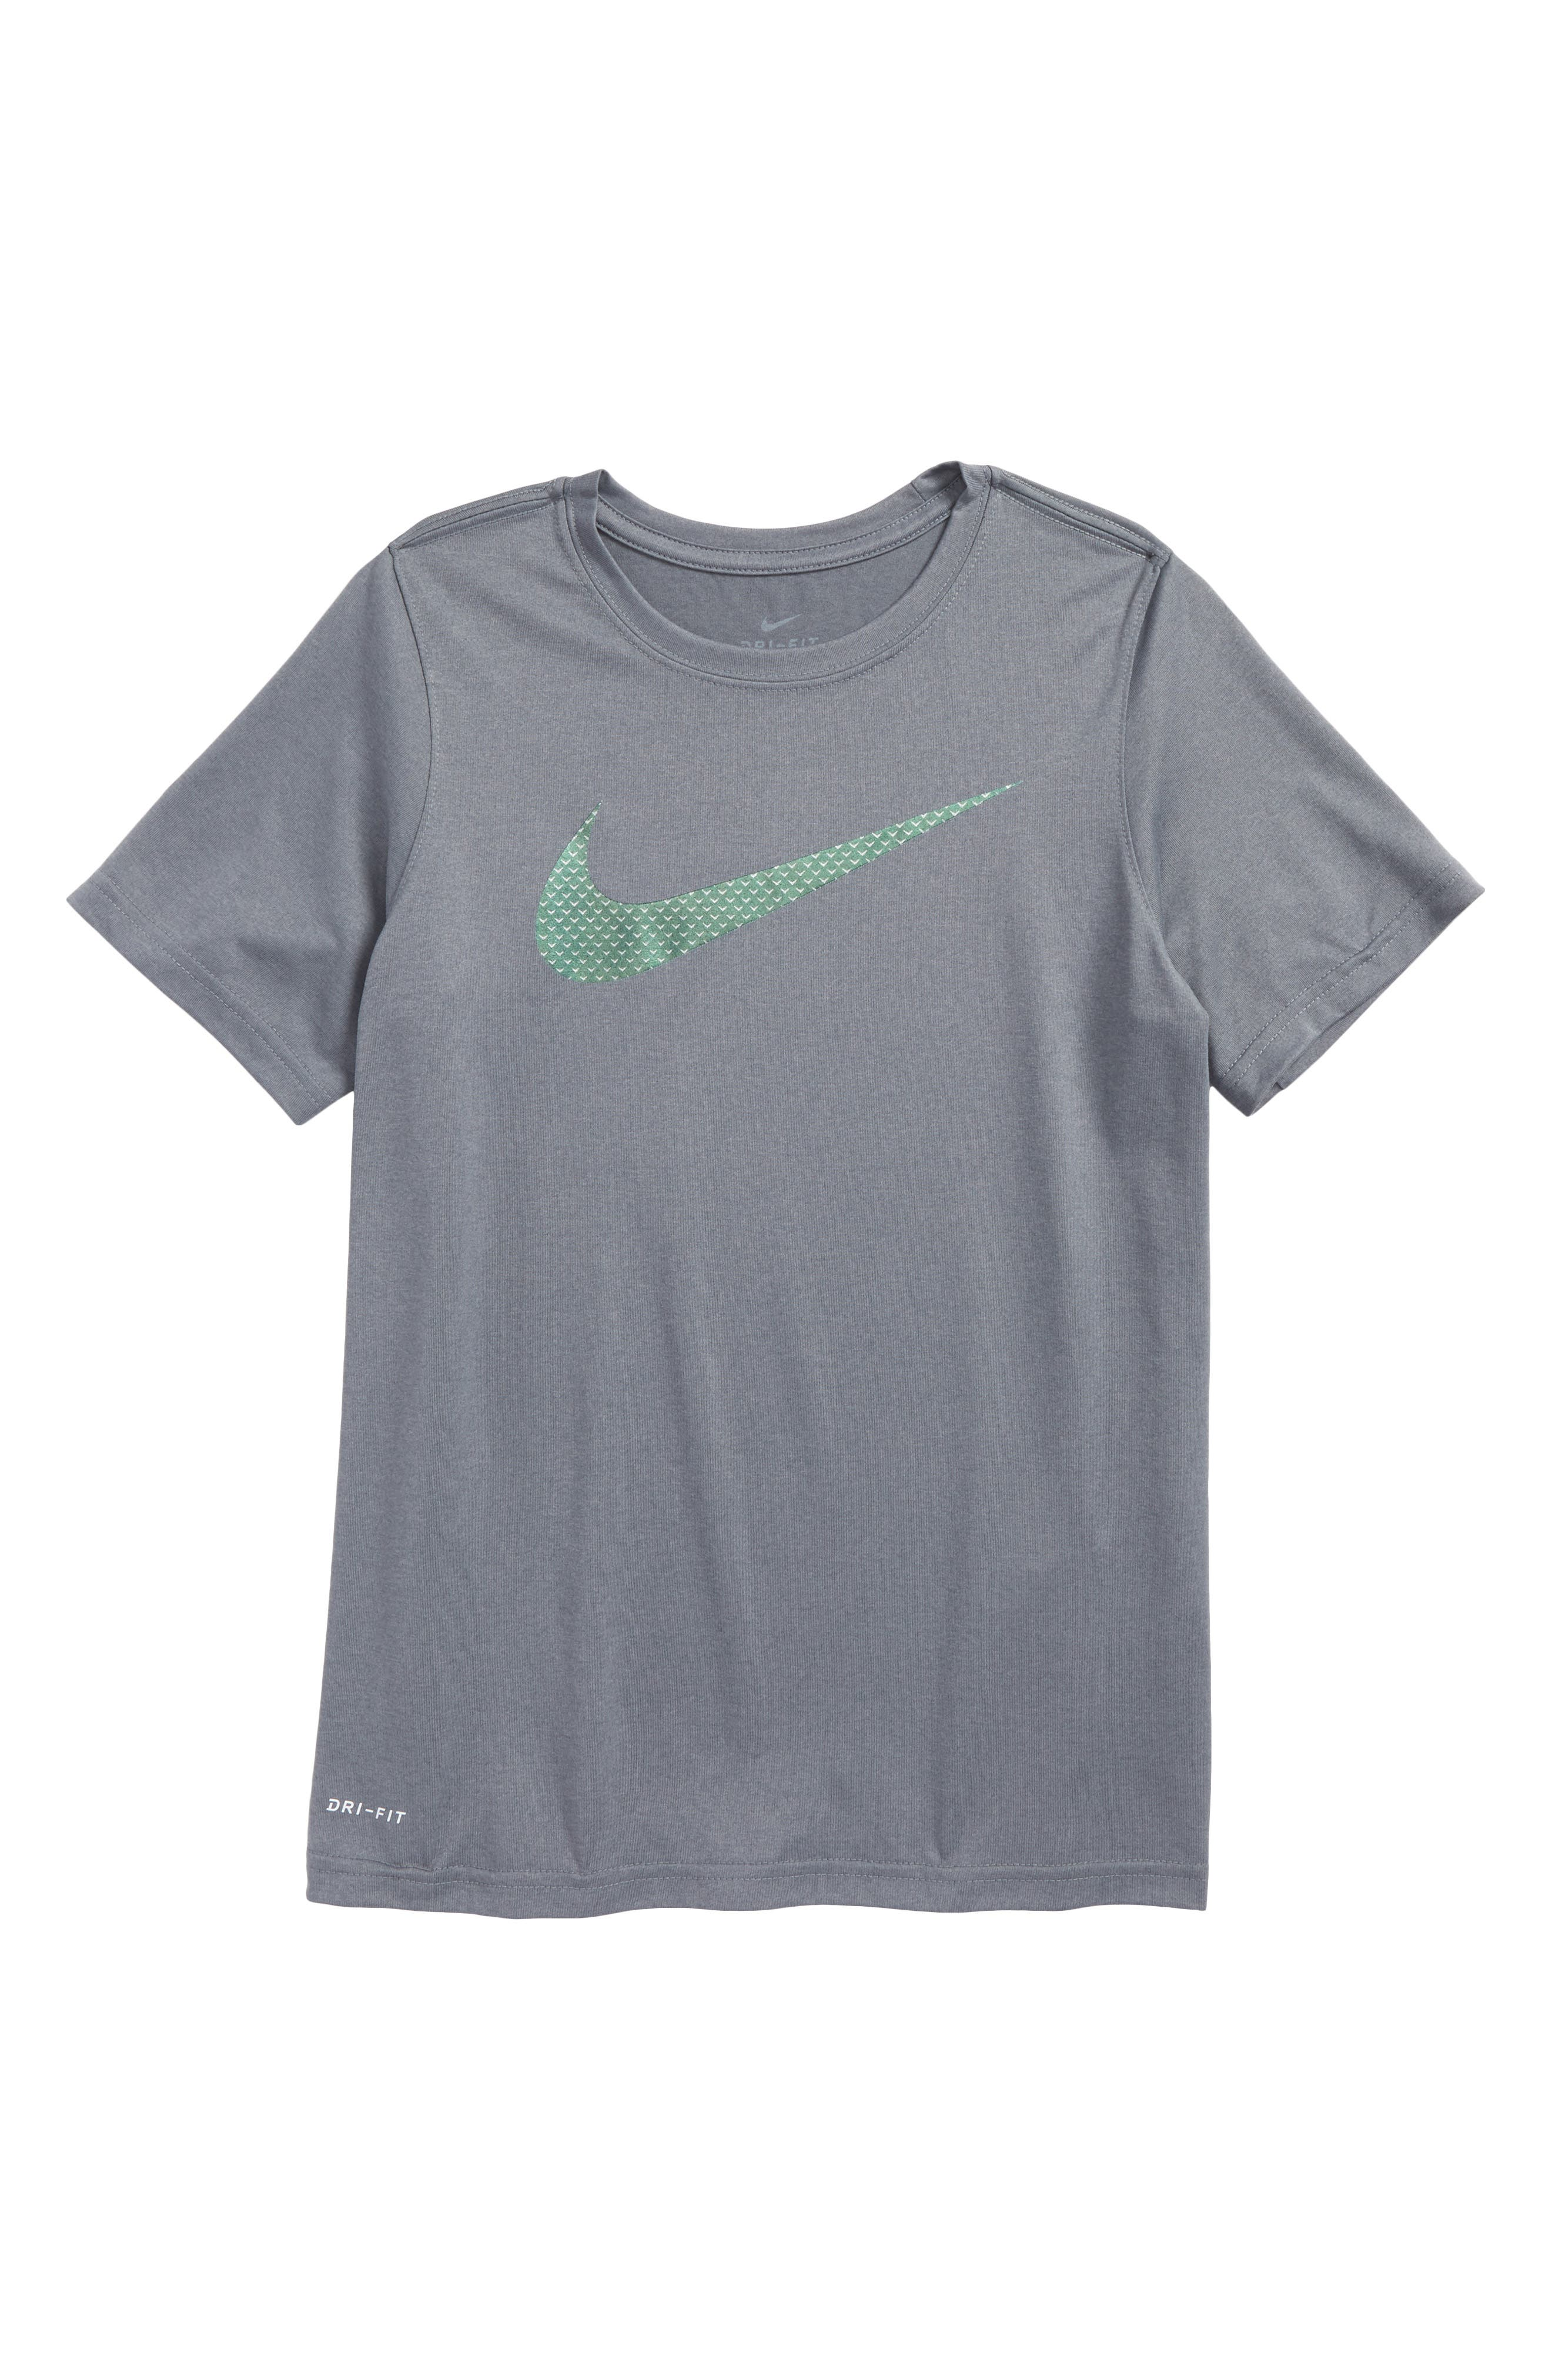 Dry Knurled Swoosh Graphic T-Shirt,                             Main thumbnail 1, color,                             065